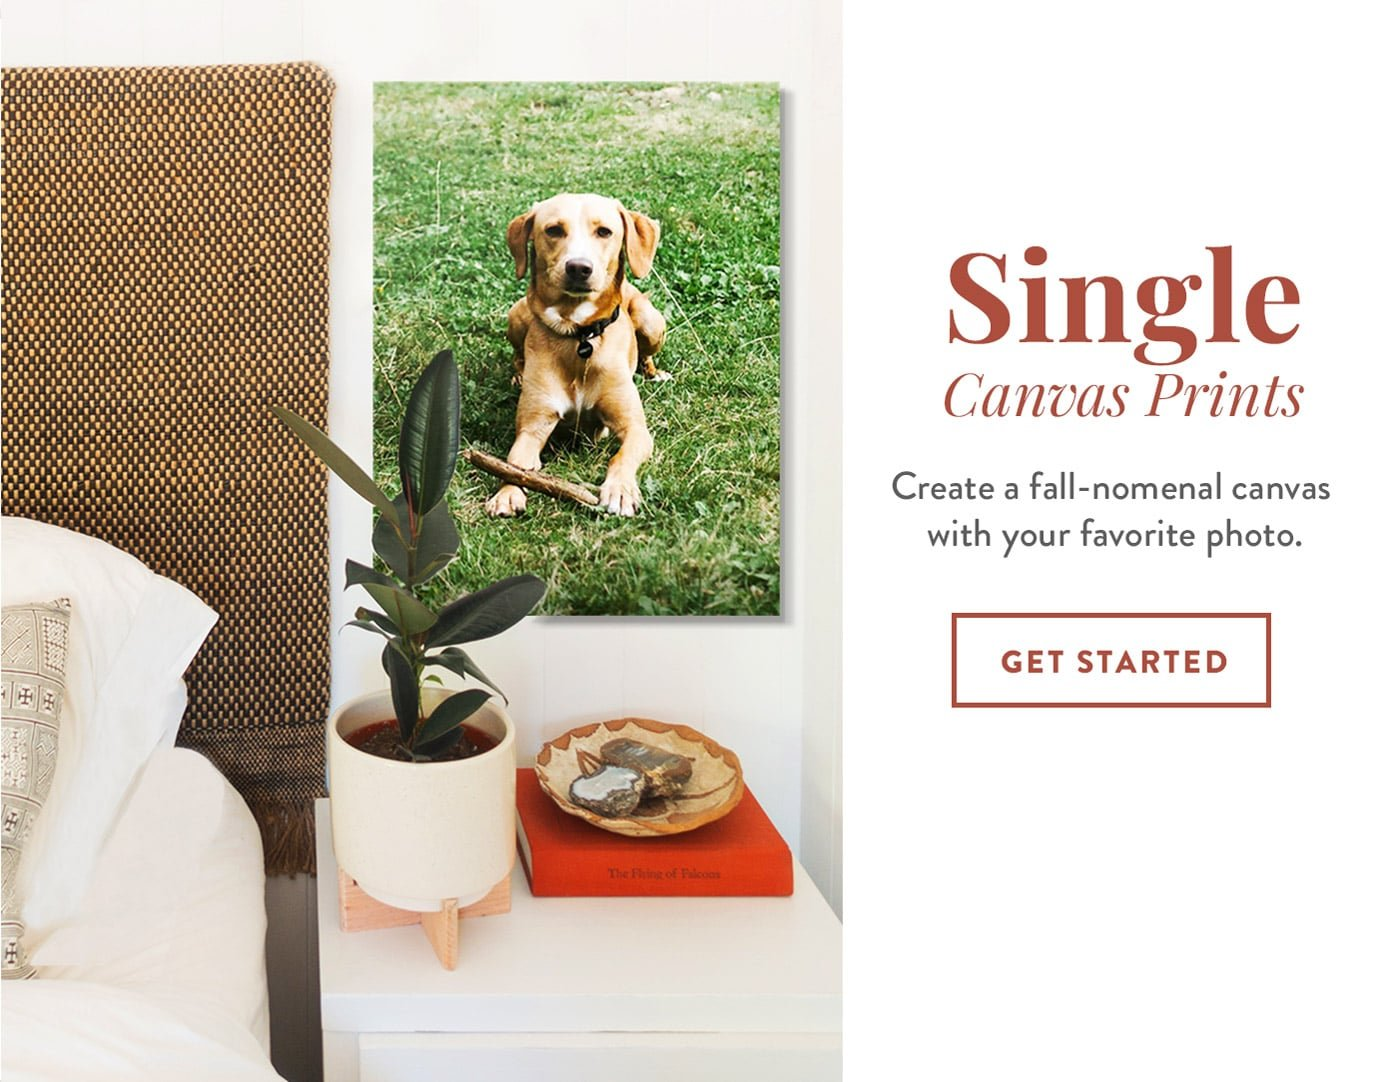 Single Canvas Prints   Create a fall-nomenal canvas with your favorite photo   GET STARTED